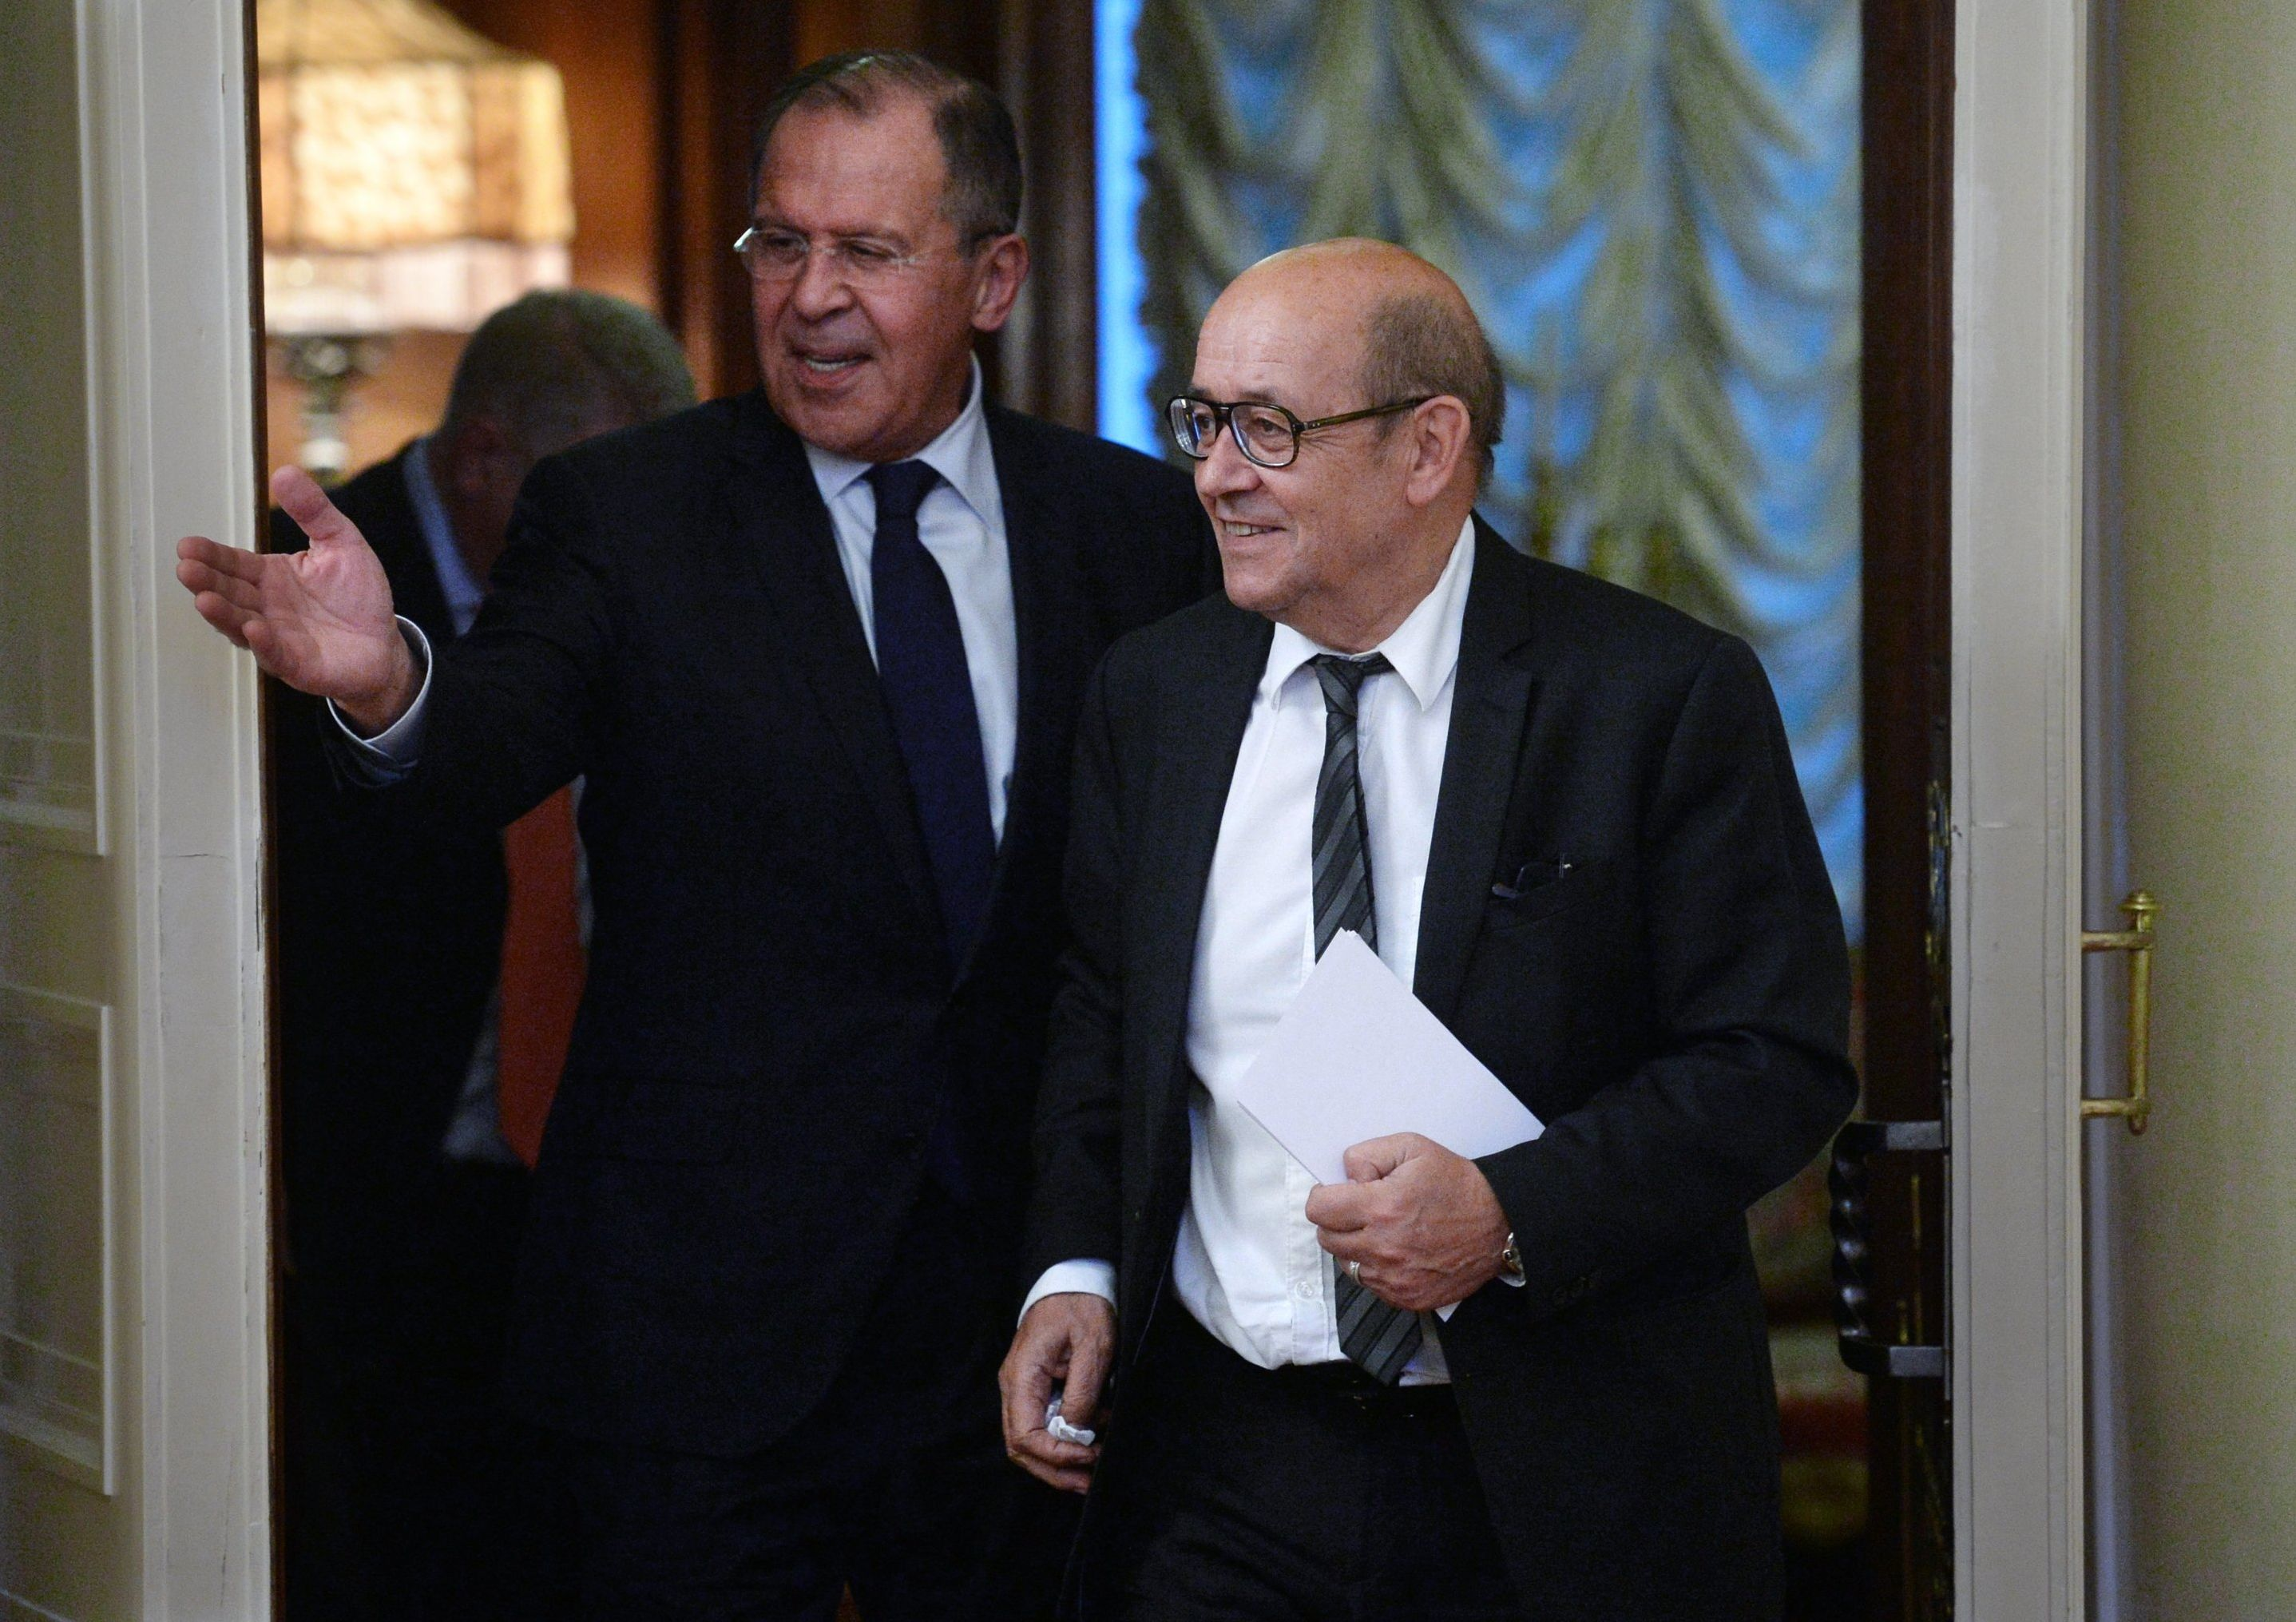 Russian Foreign Minister Sergey Lavrov, left, and Jean-Yves Le Drian, French Minister for Europe and Foreign Affairs, during a meeting at the Russian Foreign Ministry's Reception House